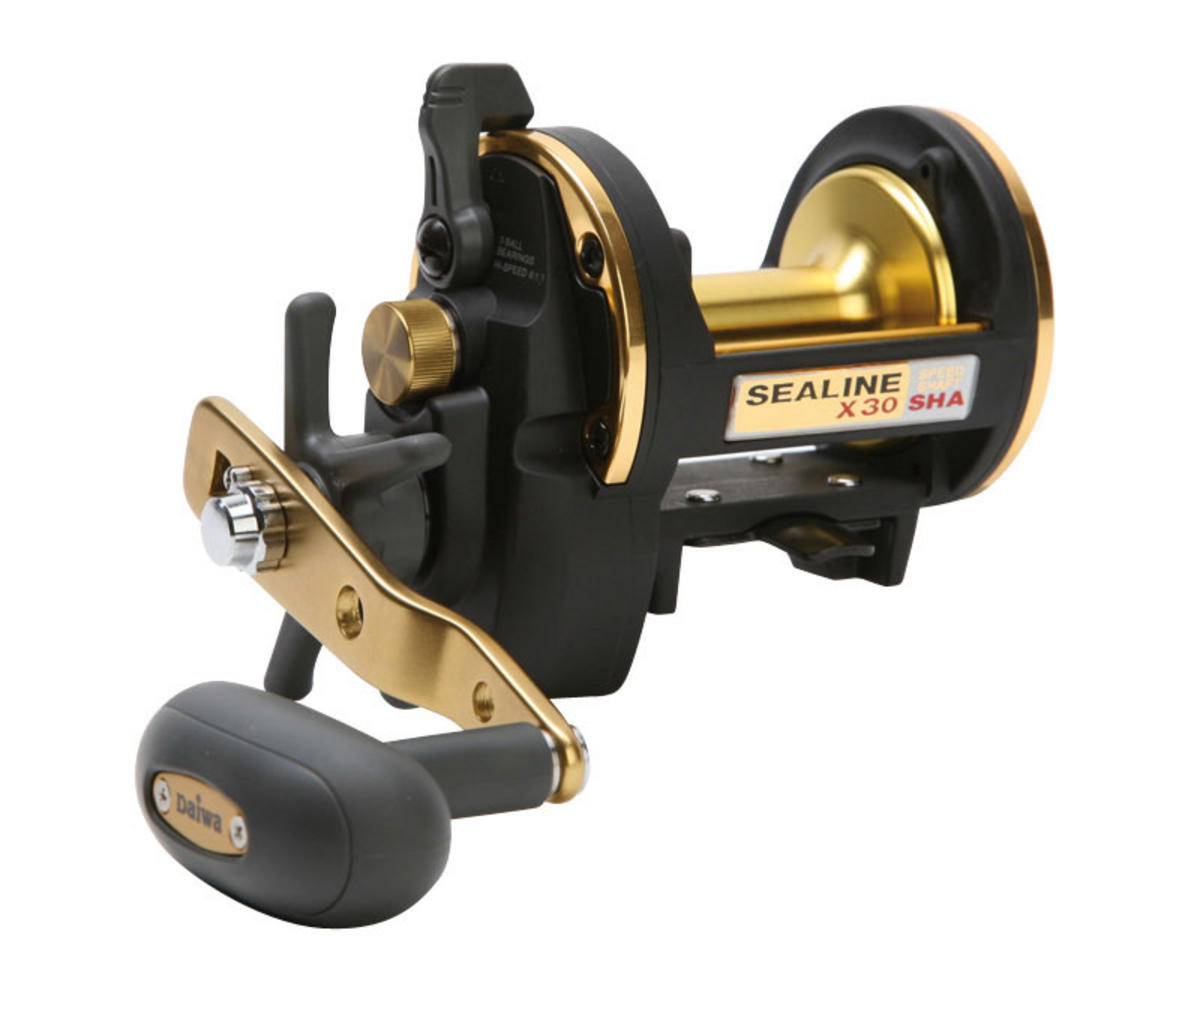 DAIWA SEALINE X 30SHA Model No SLX30SHA MULTIPLIER REEL